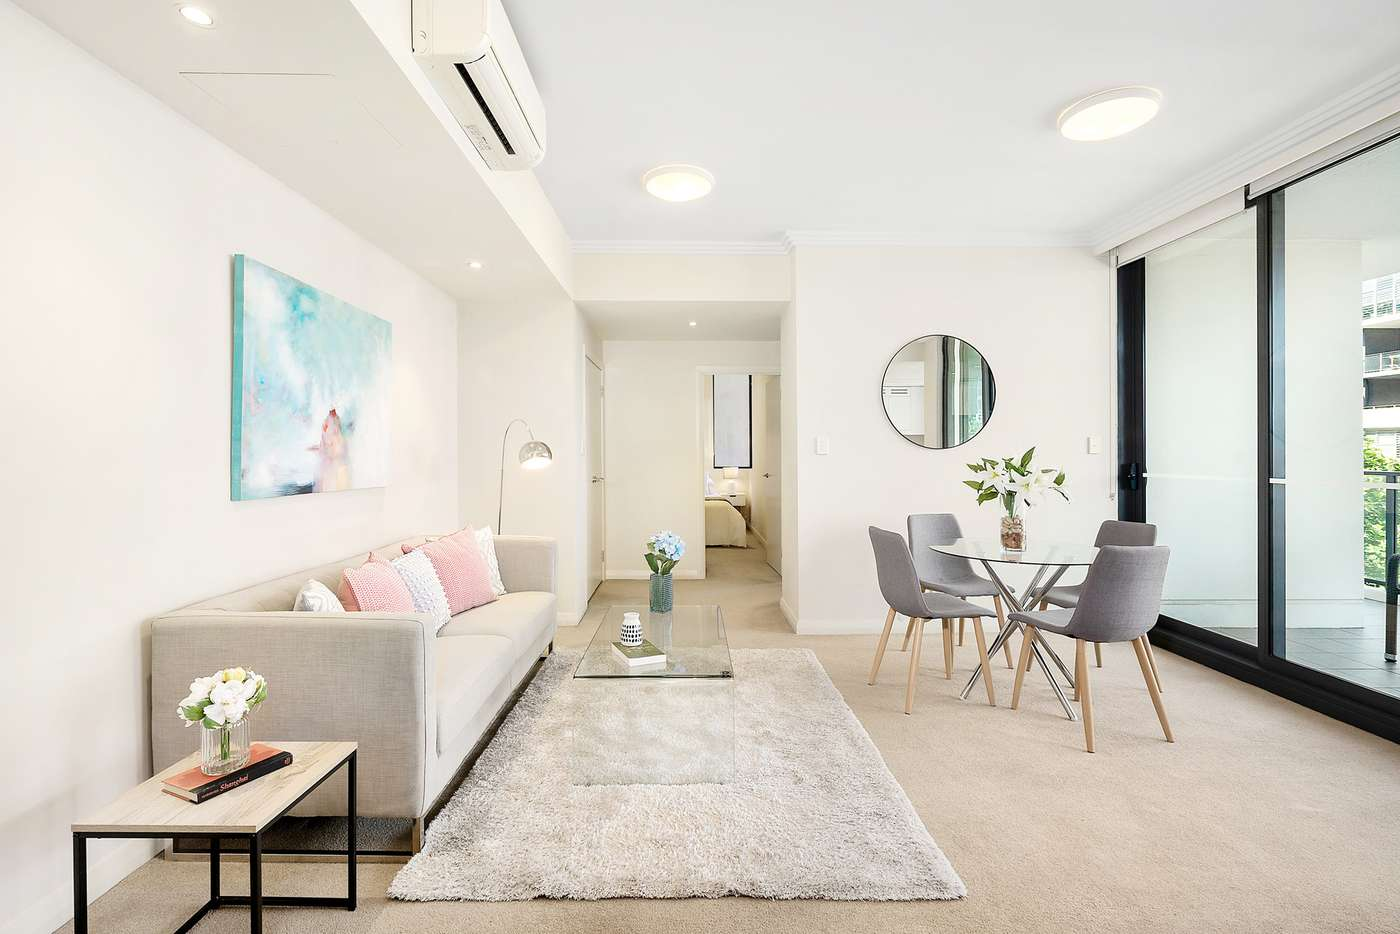 Main view of Homely apartment listing, 502/51-53 Hill Road, Wentworth Point NSW 2127